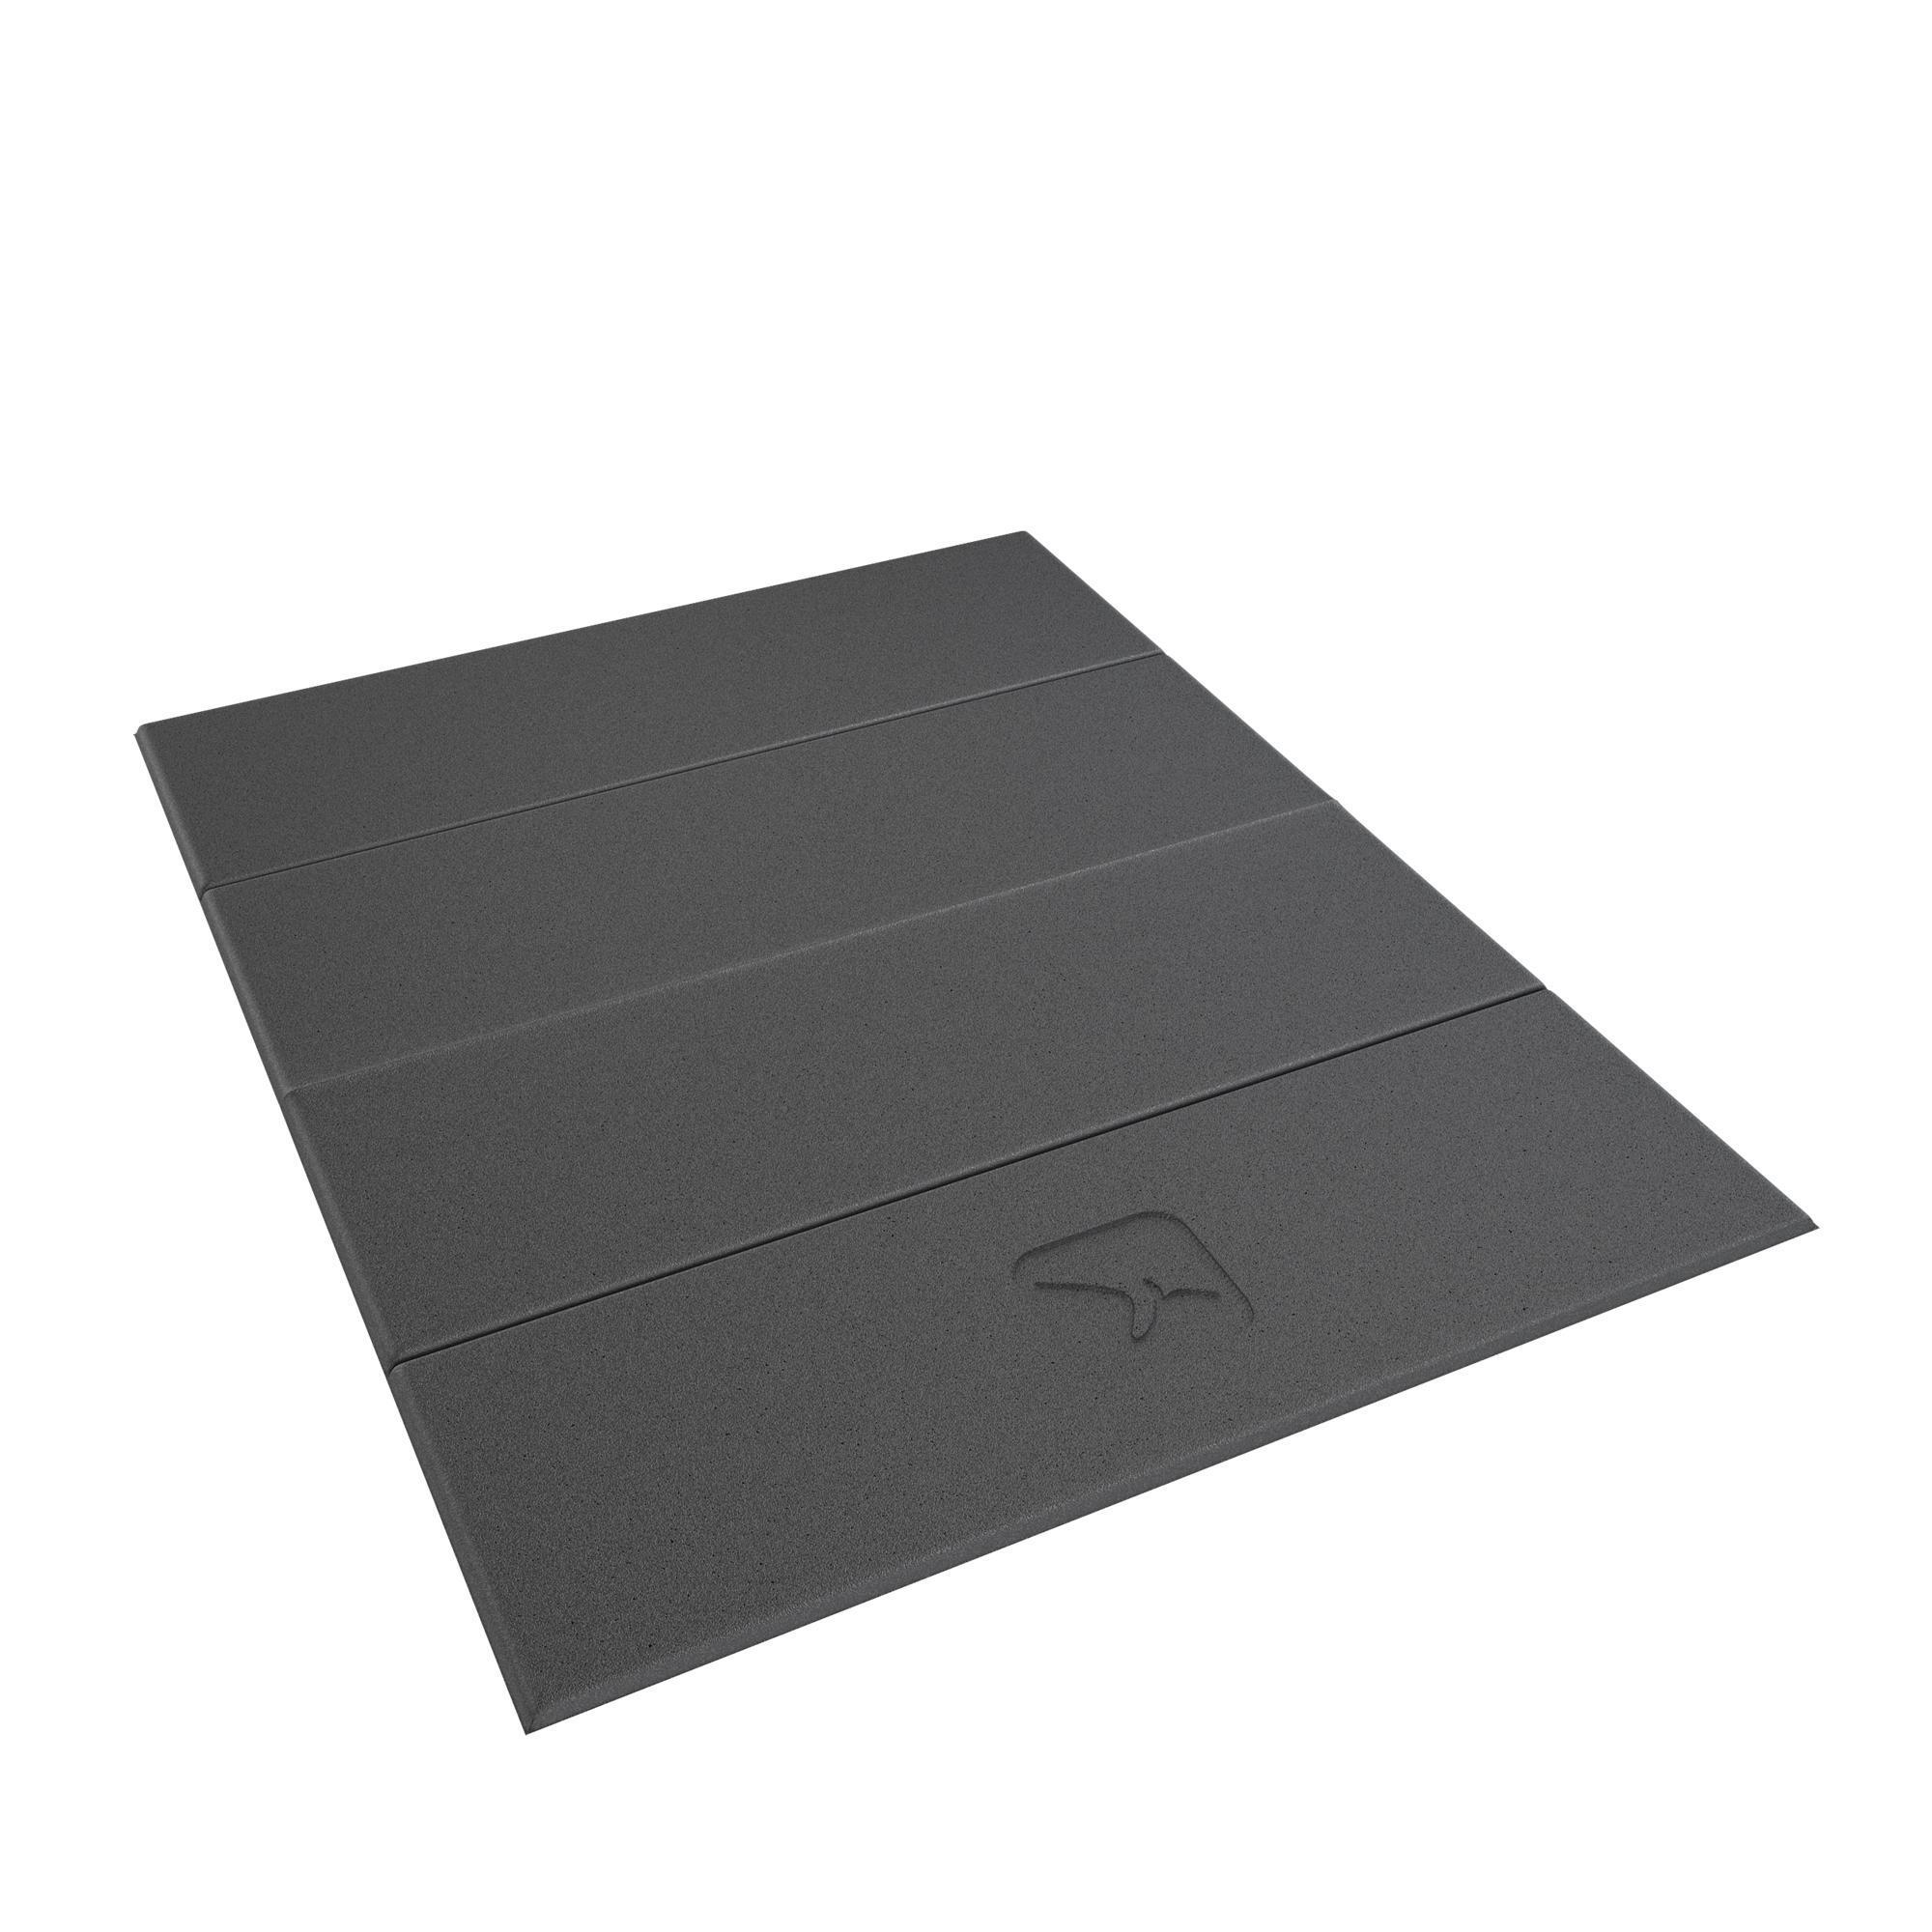 Mini tapis de gym domyos by decathlon - Tapis de sol decathlon ...